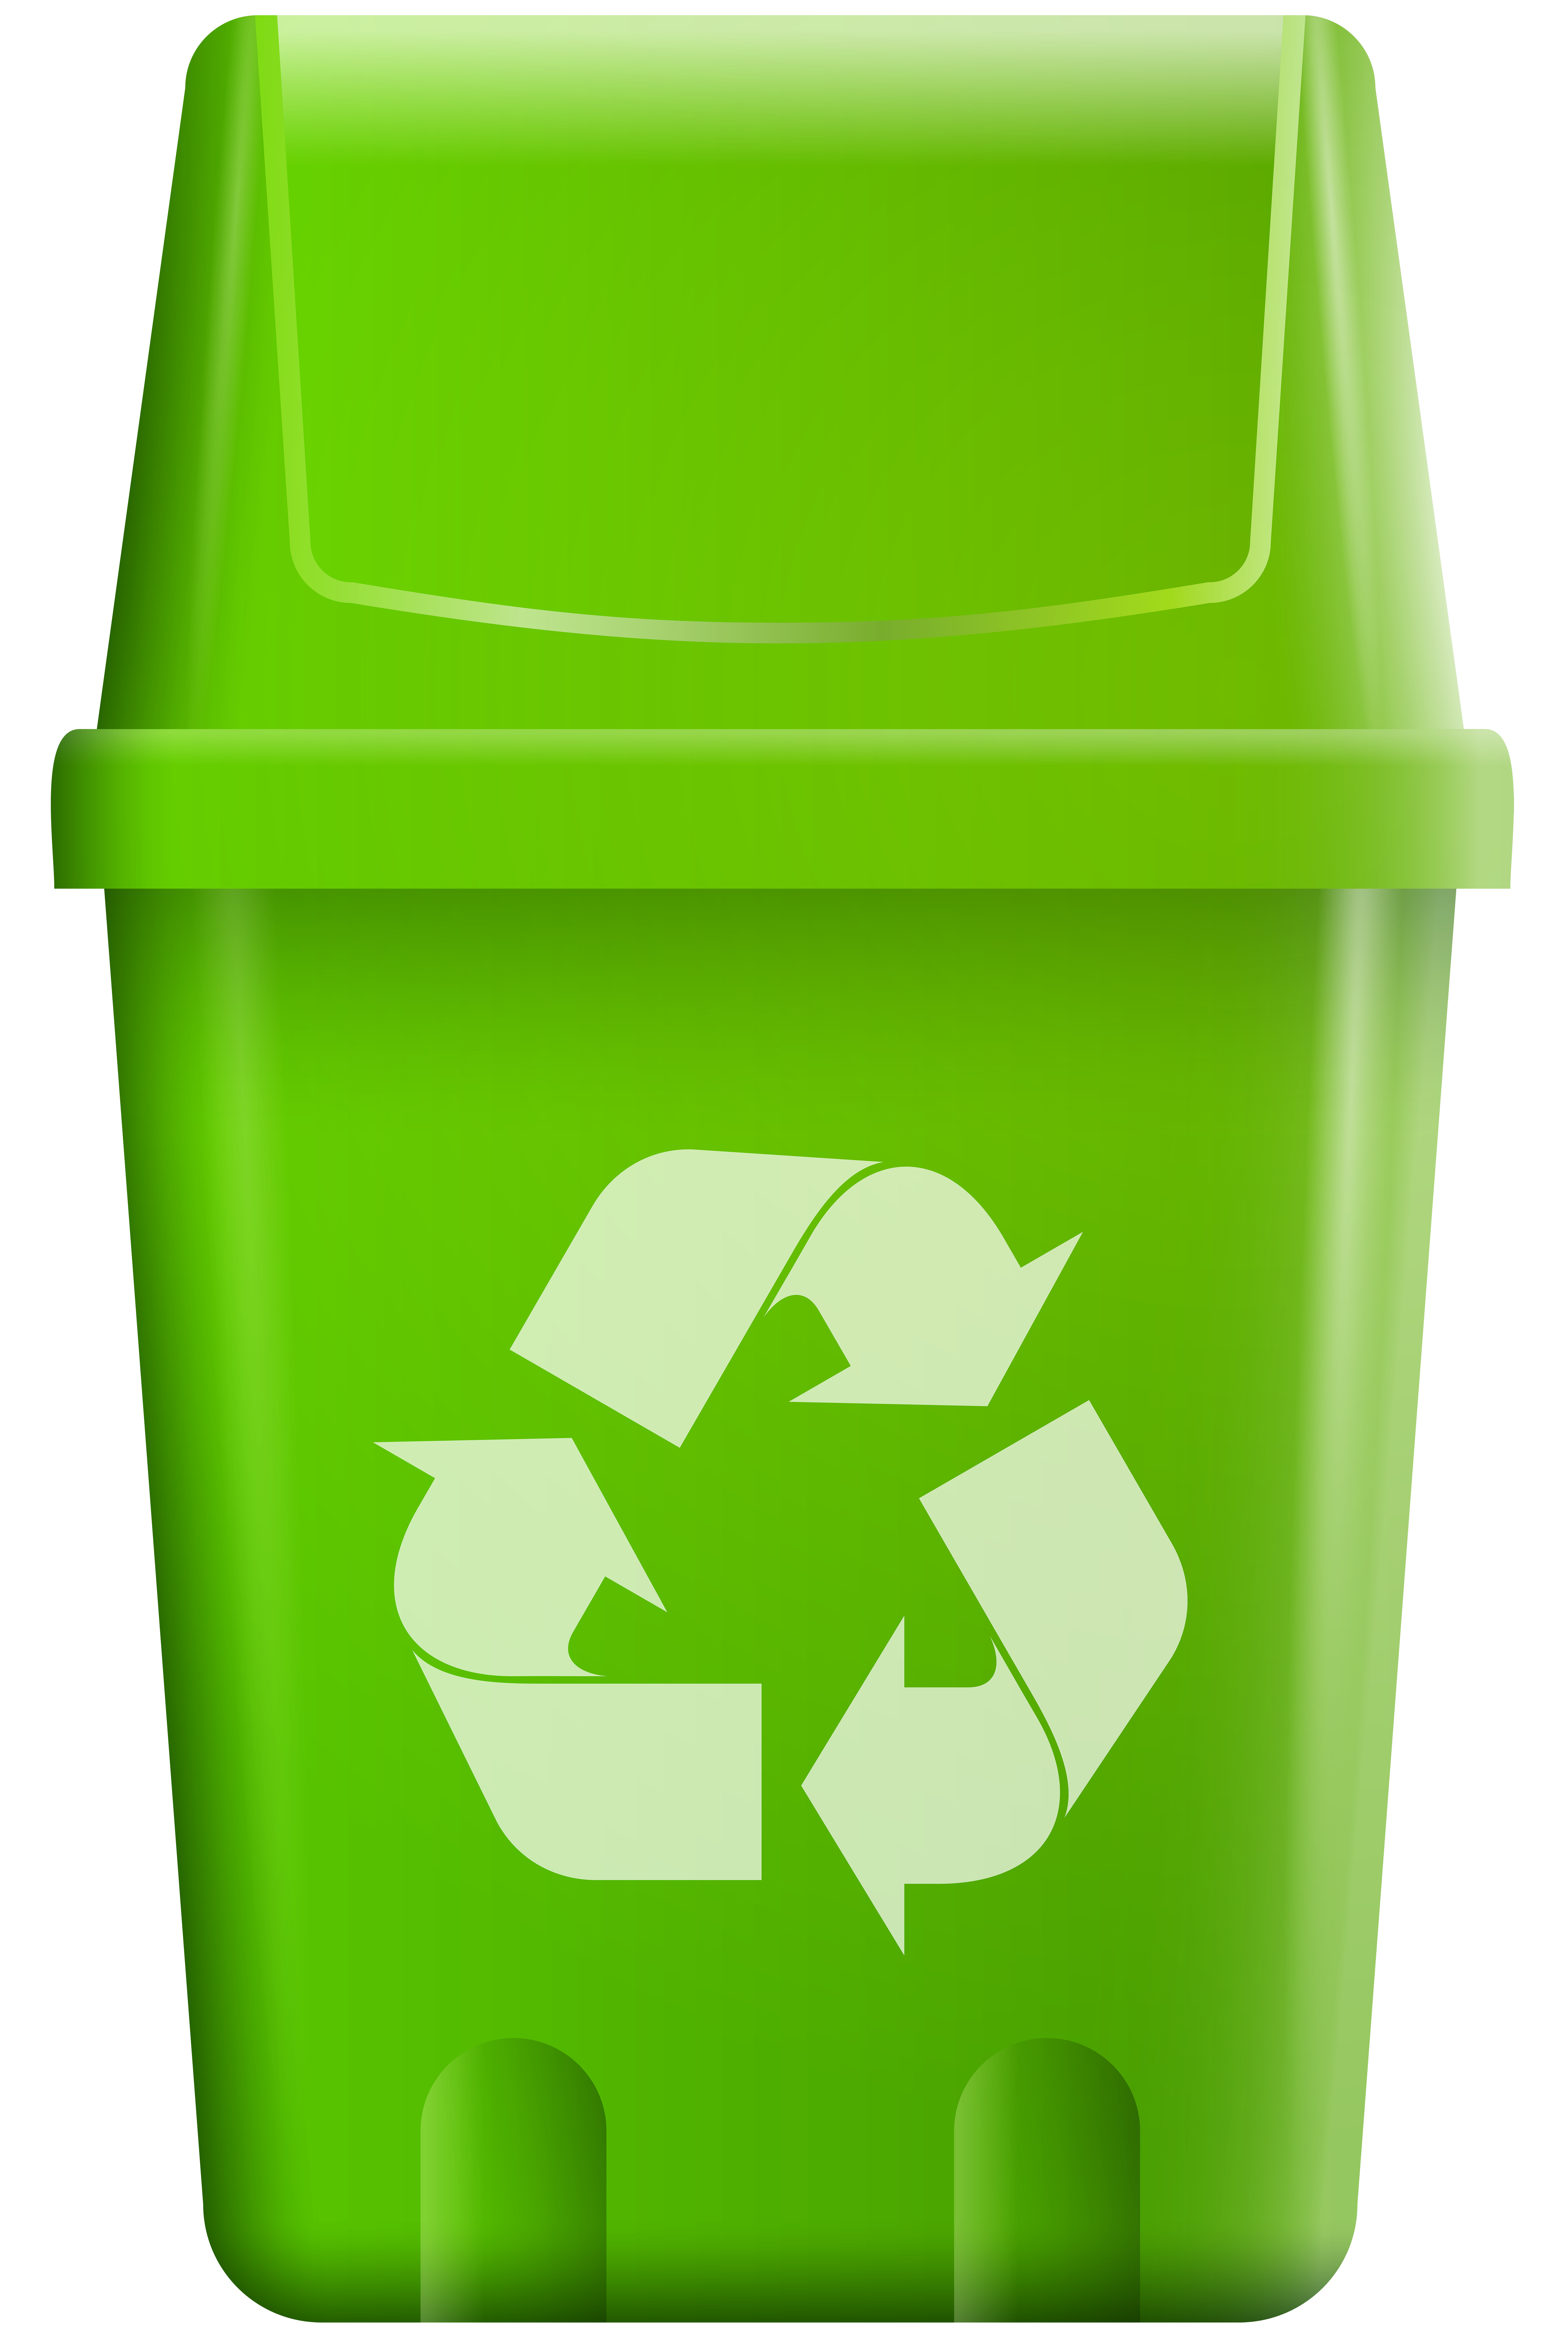 clip art transparent library Trash bin with recycle. Trashcan clipart recycling box